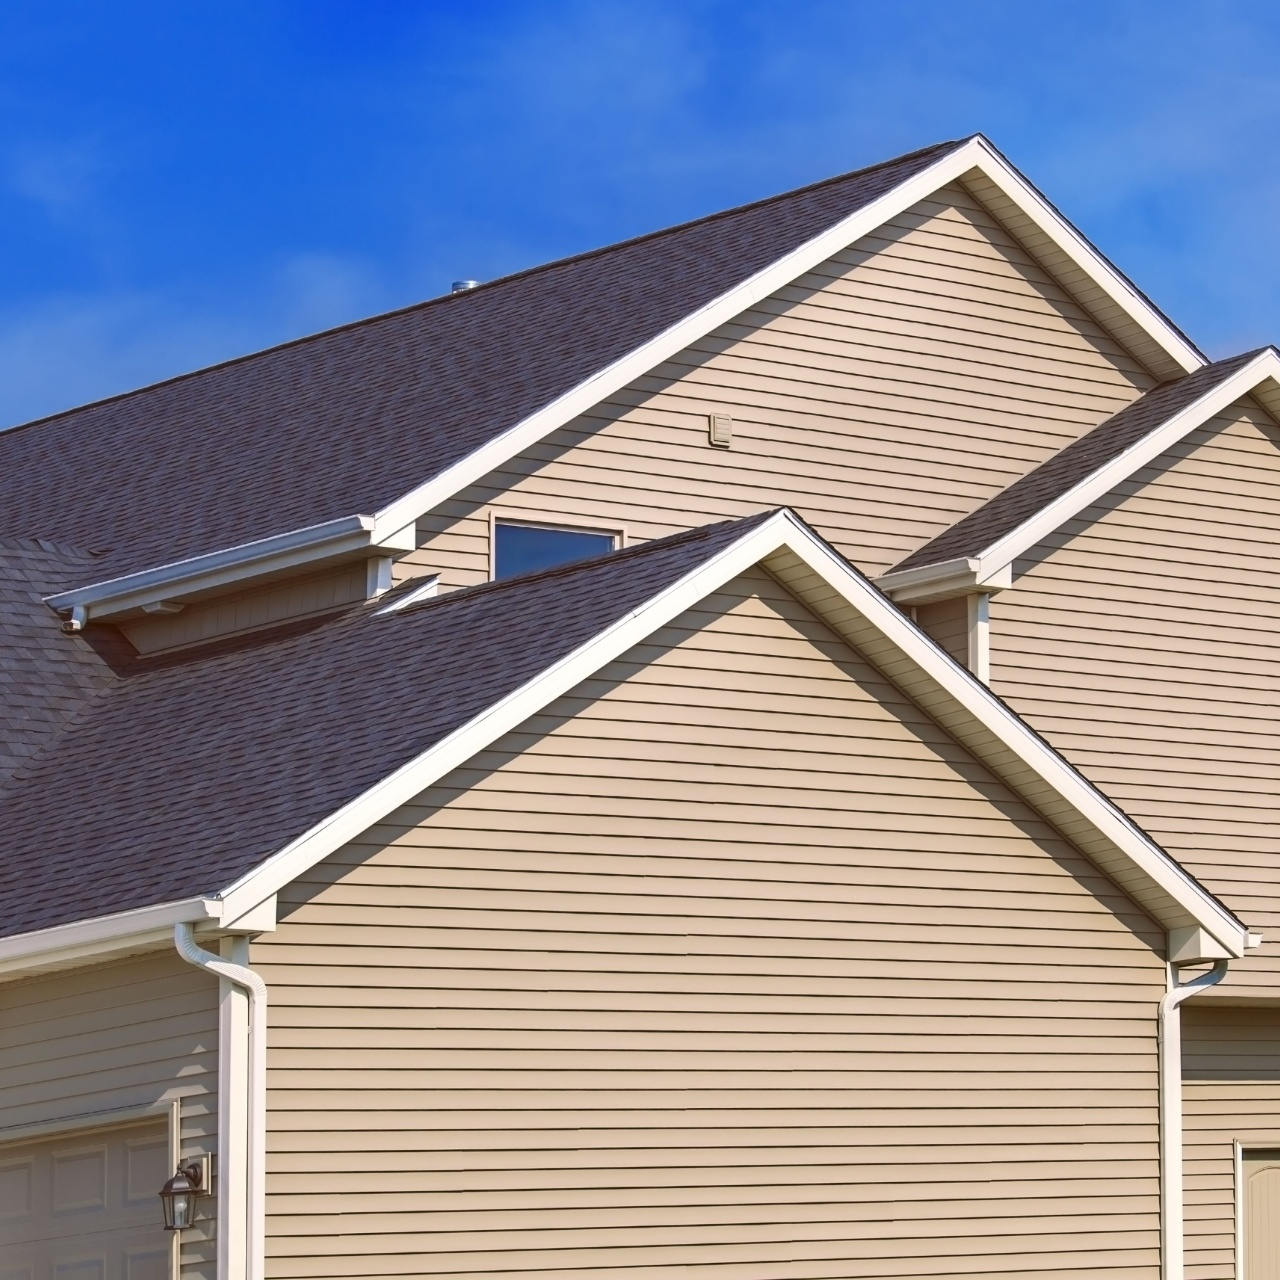 Vinyl Siding Installers Near Me Equalmarriagefl Vinyl